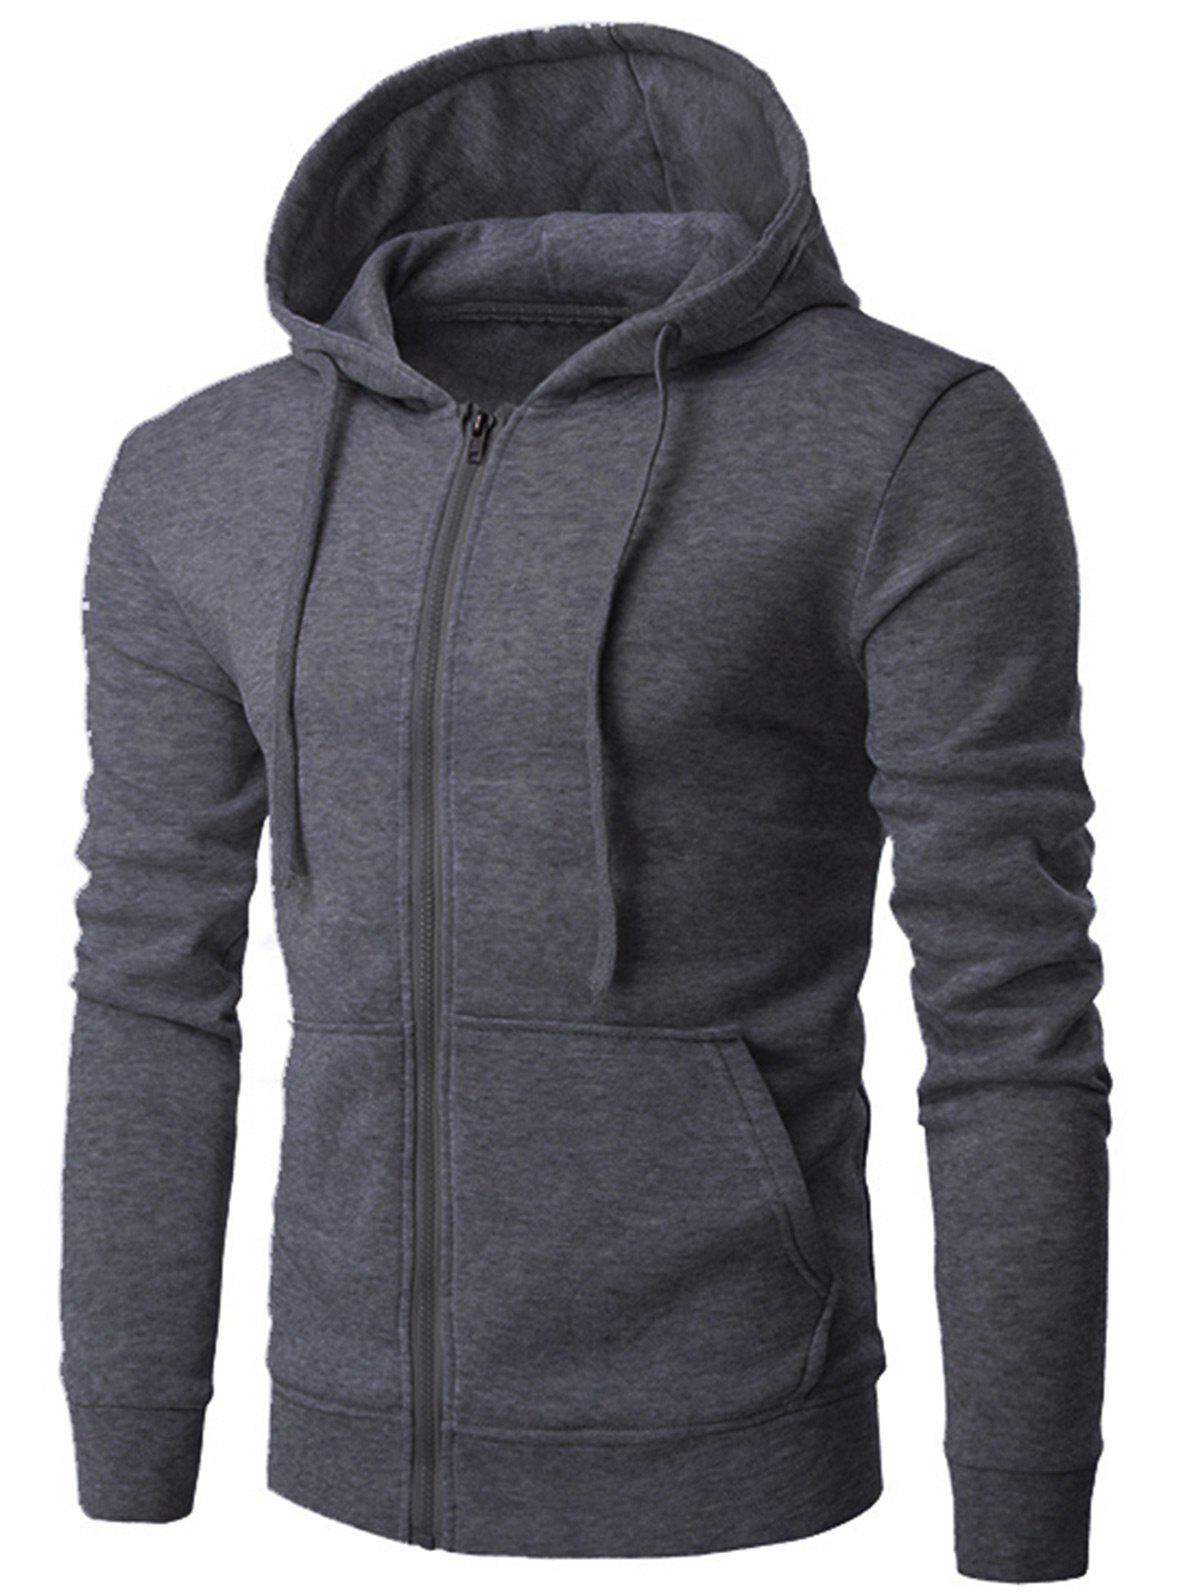 Deep hooded hoodies